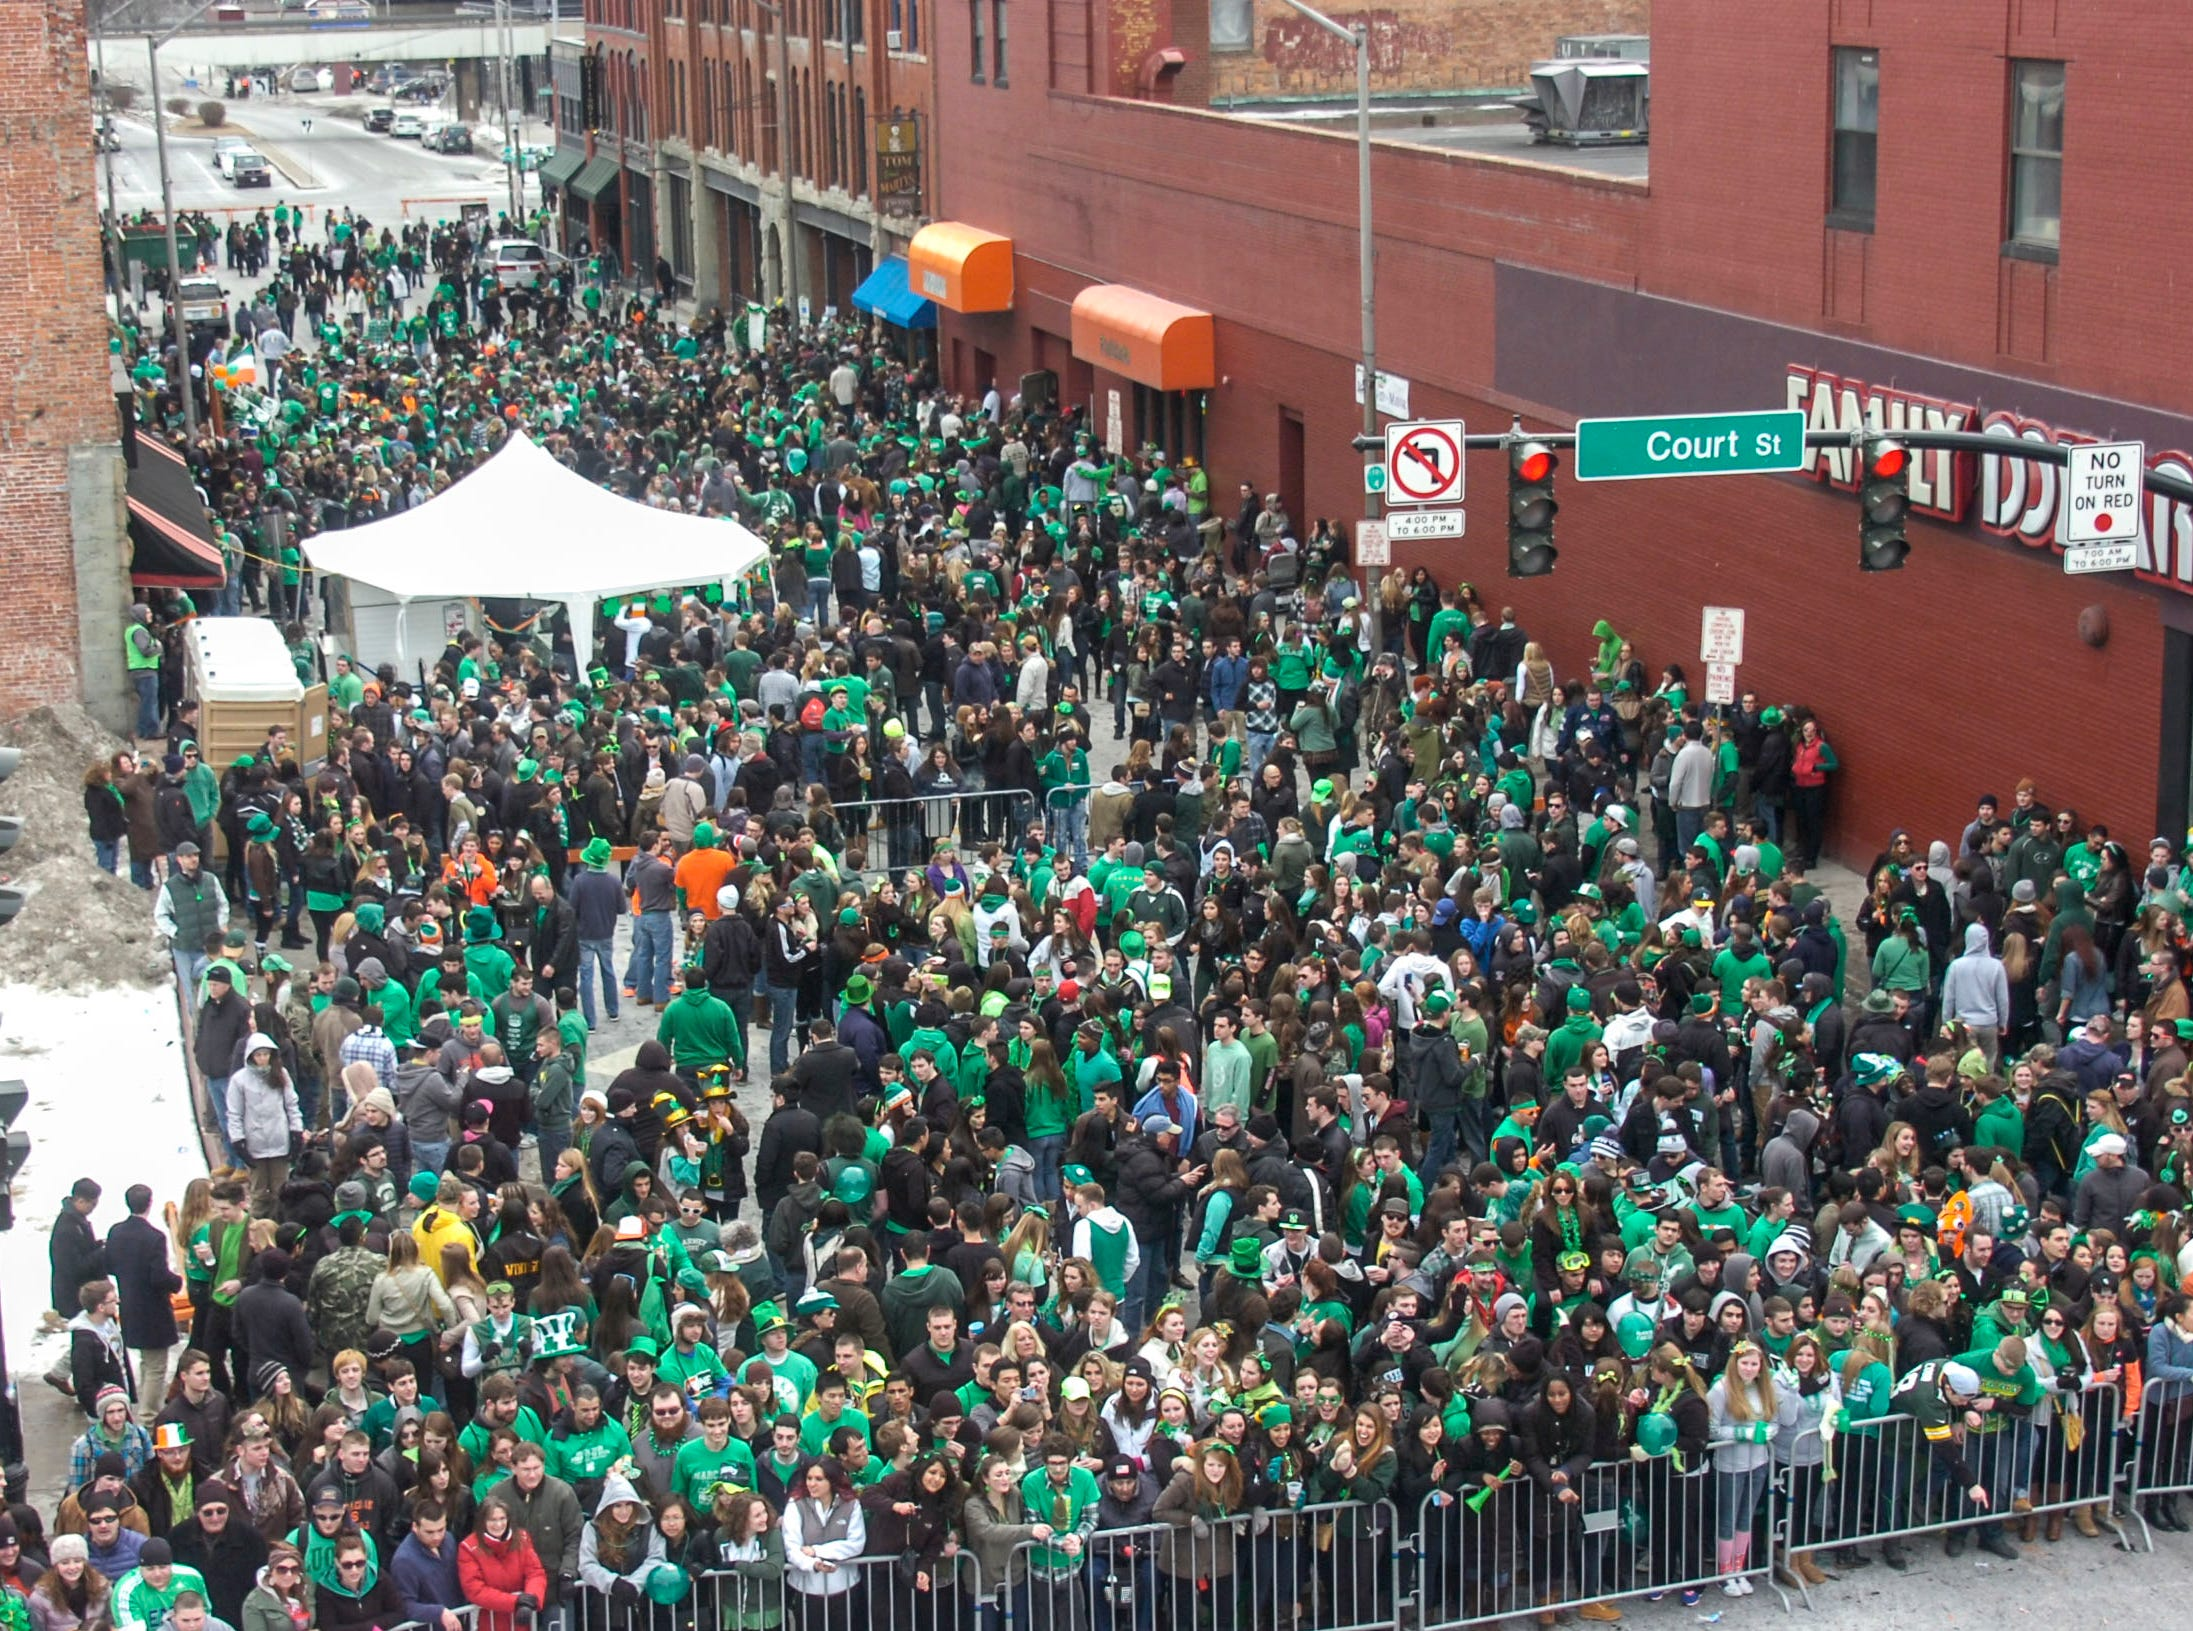 2014: Crowds of people fill State Street during the 47th annual St. PatrickÕs Day Parade in downtown Binghamton on Saturday.